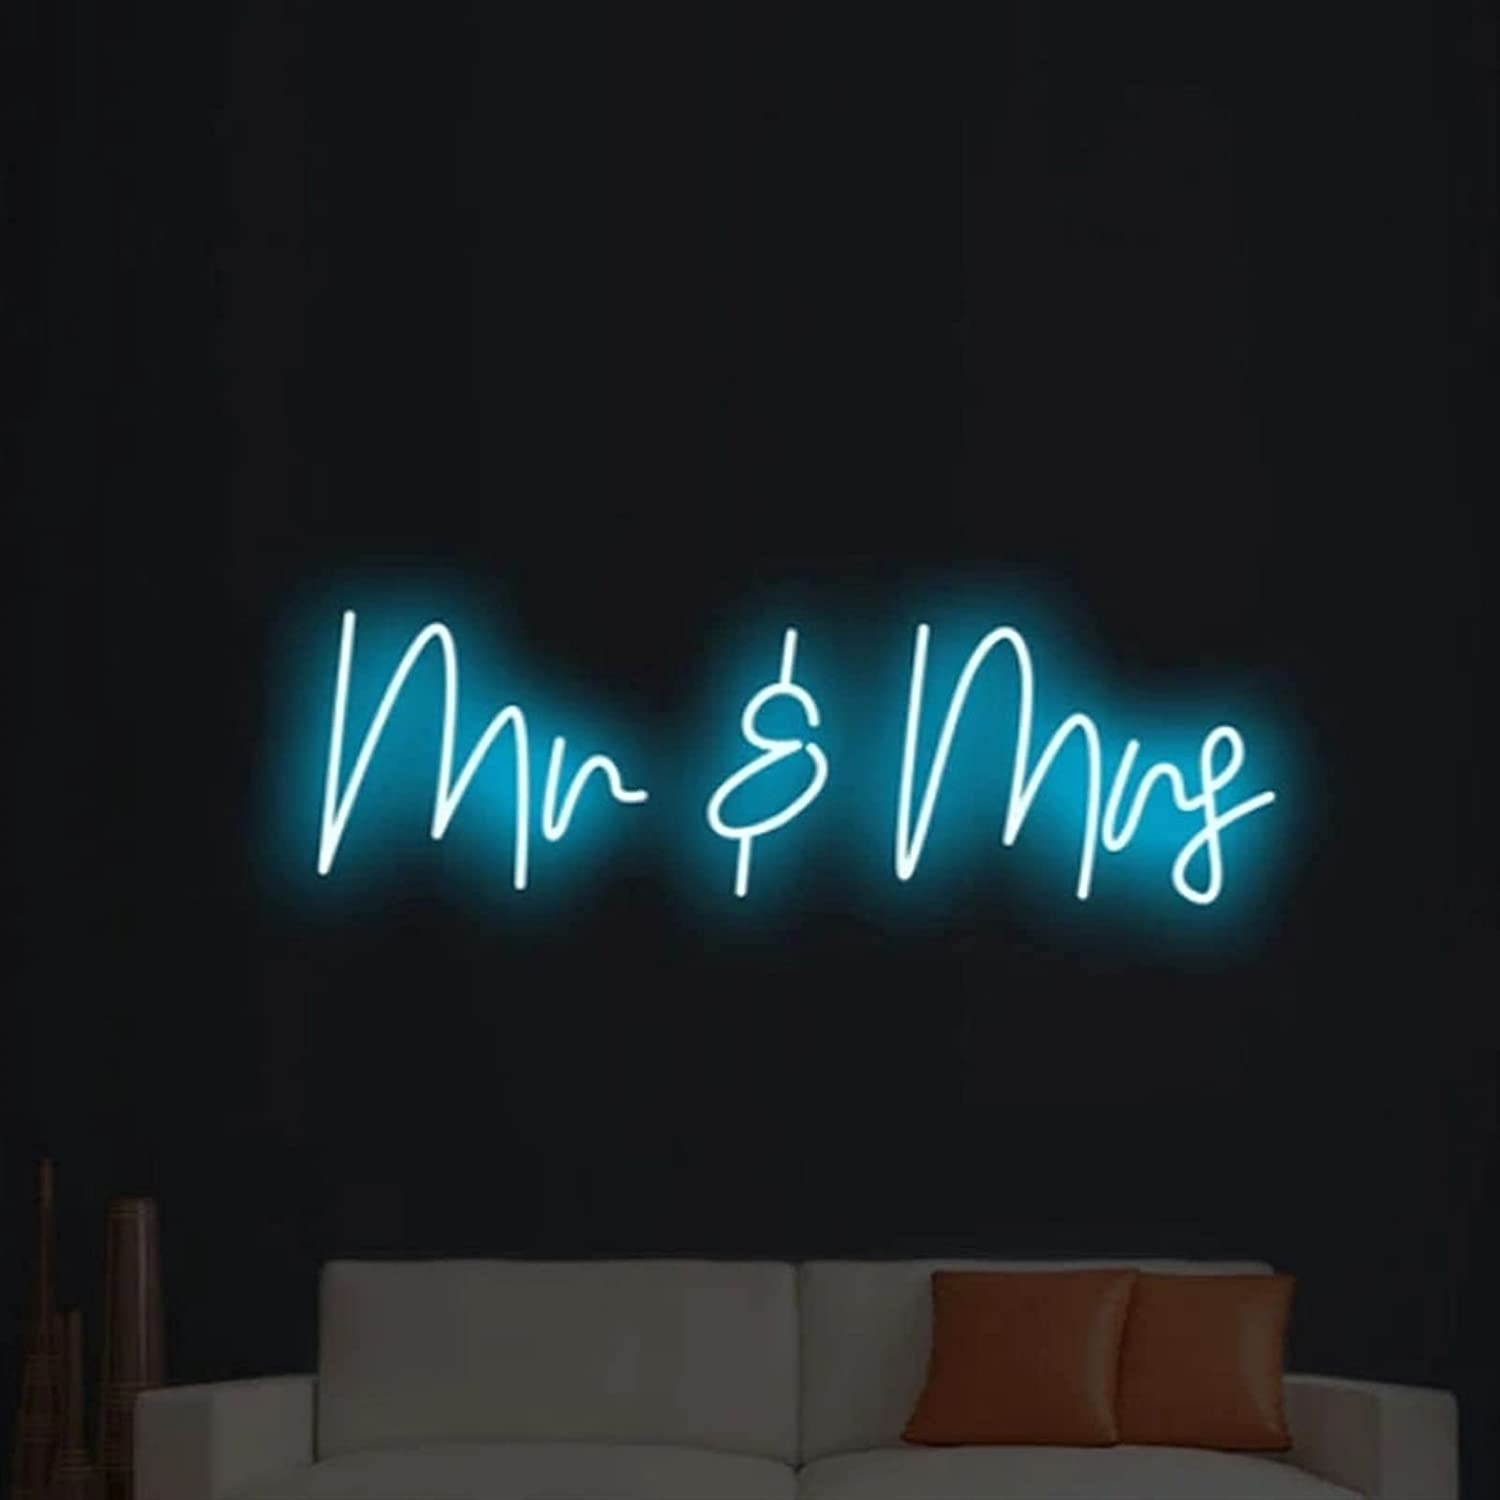 Custom Neon Light Sign MrMrs for Holiday Lights Free Shipping New Room mart Wall